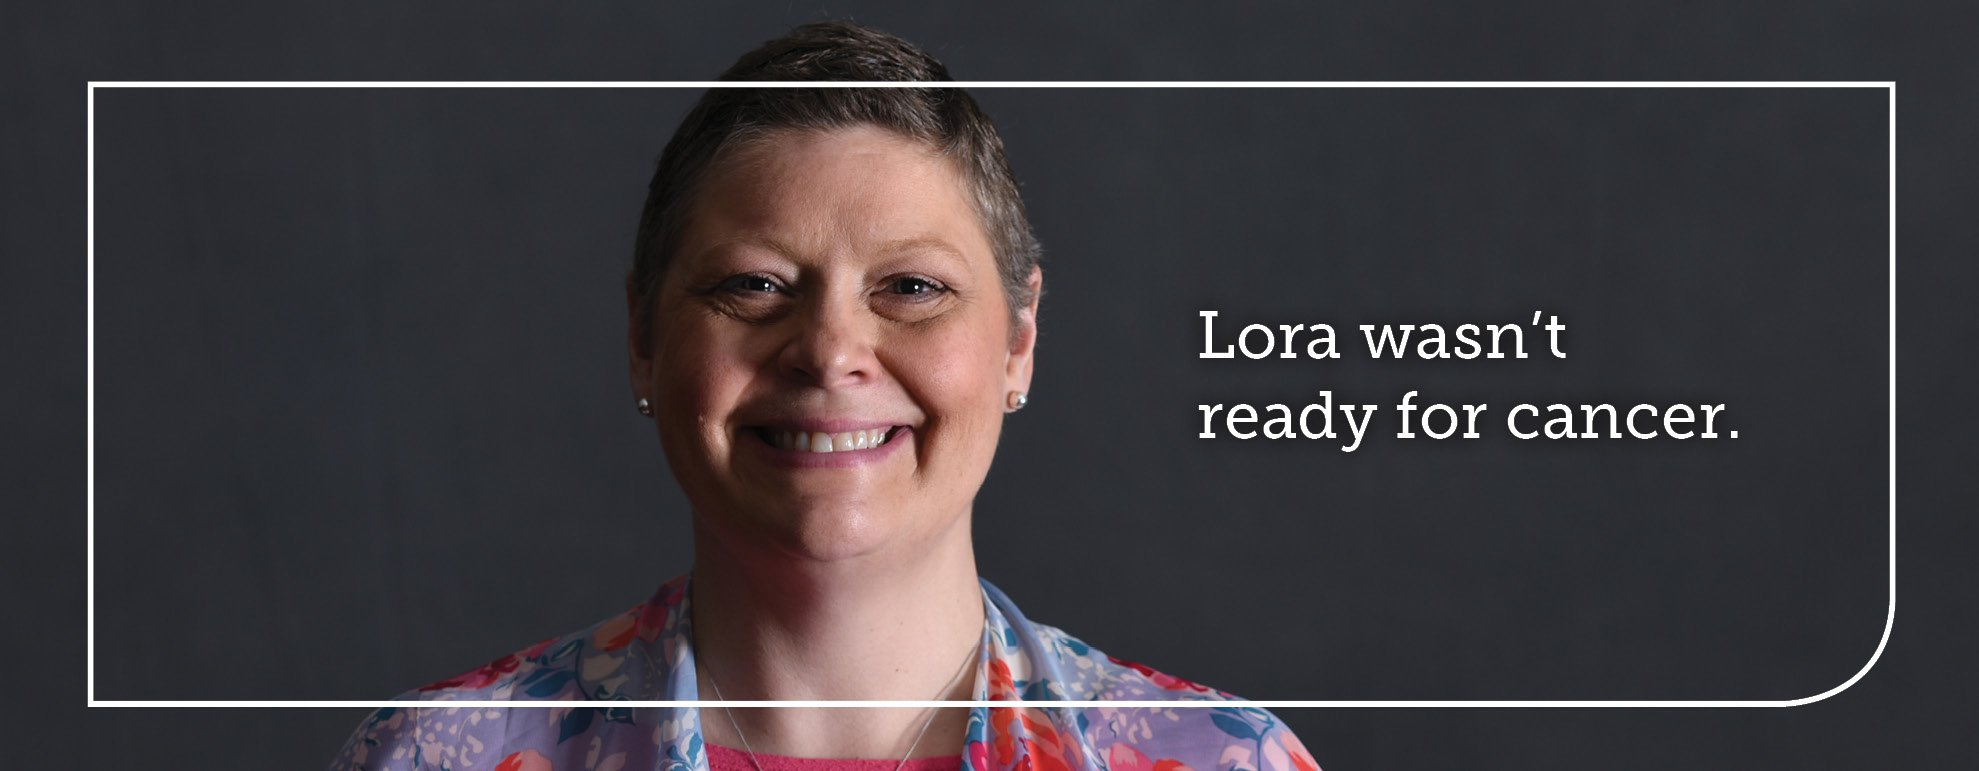 Lora wasn't ready for cancer. Mary Greeley was ready for Lora.